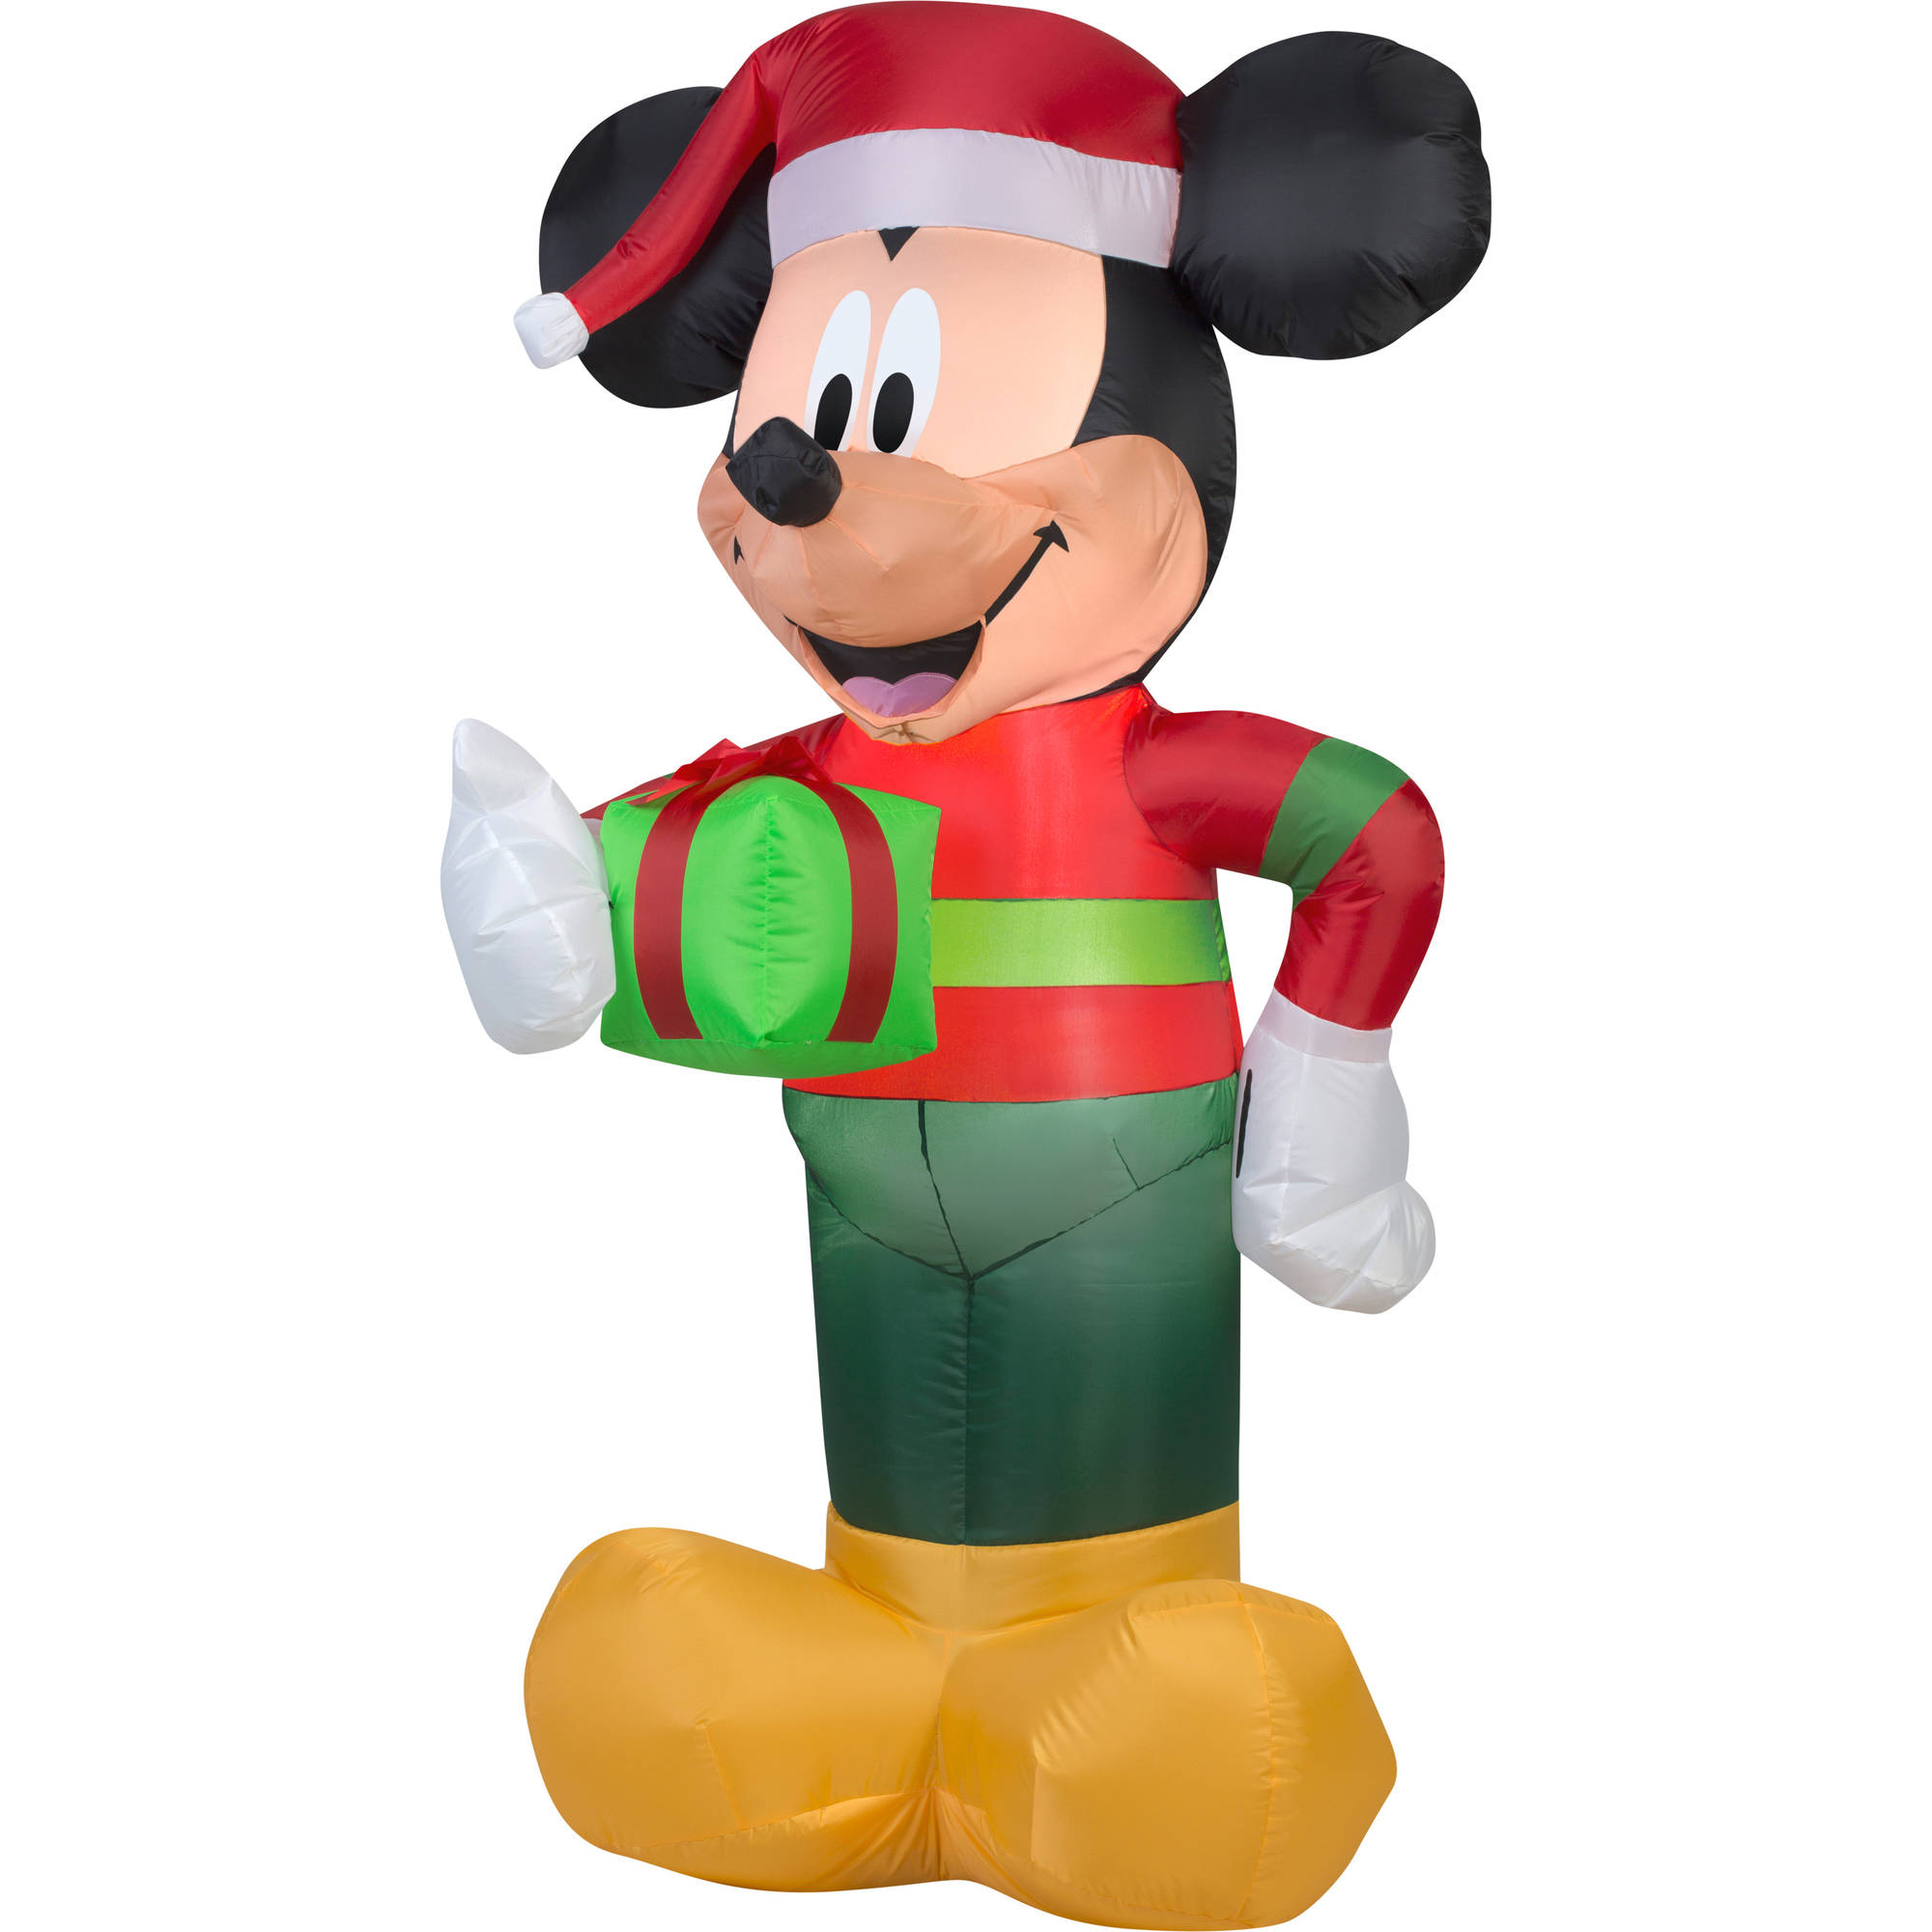 Gemmy Airblown Christmas Inflatables Disney Mickey with Present, 5'